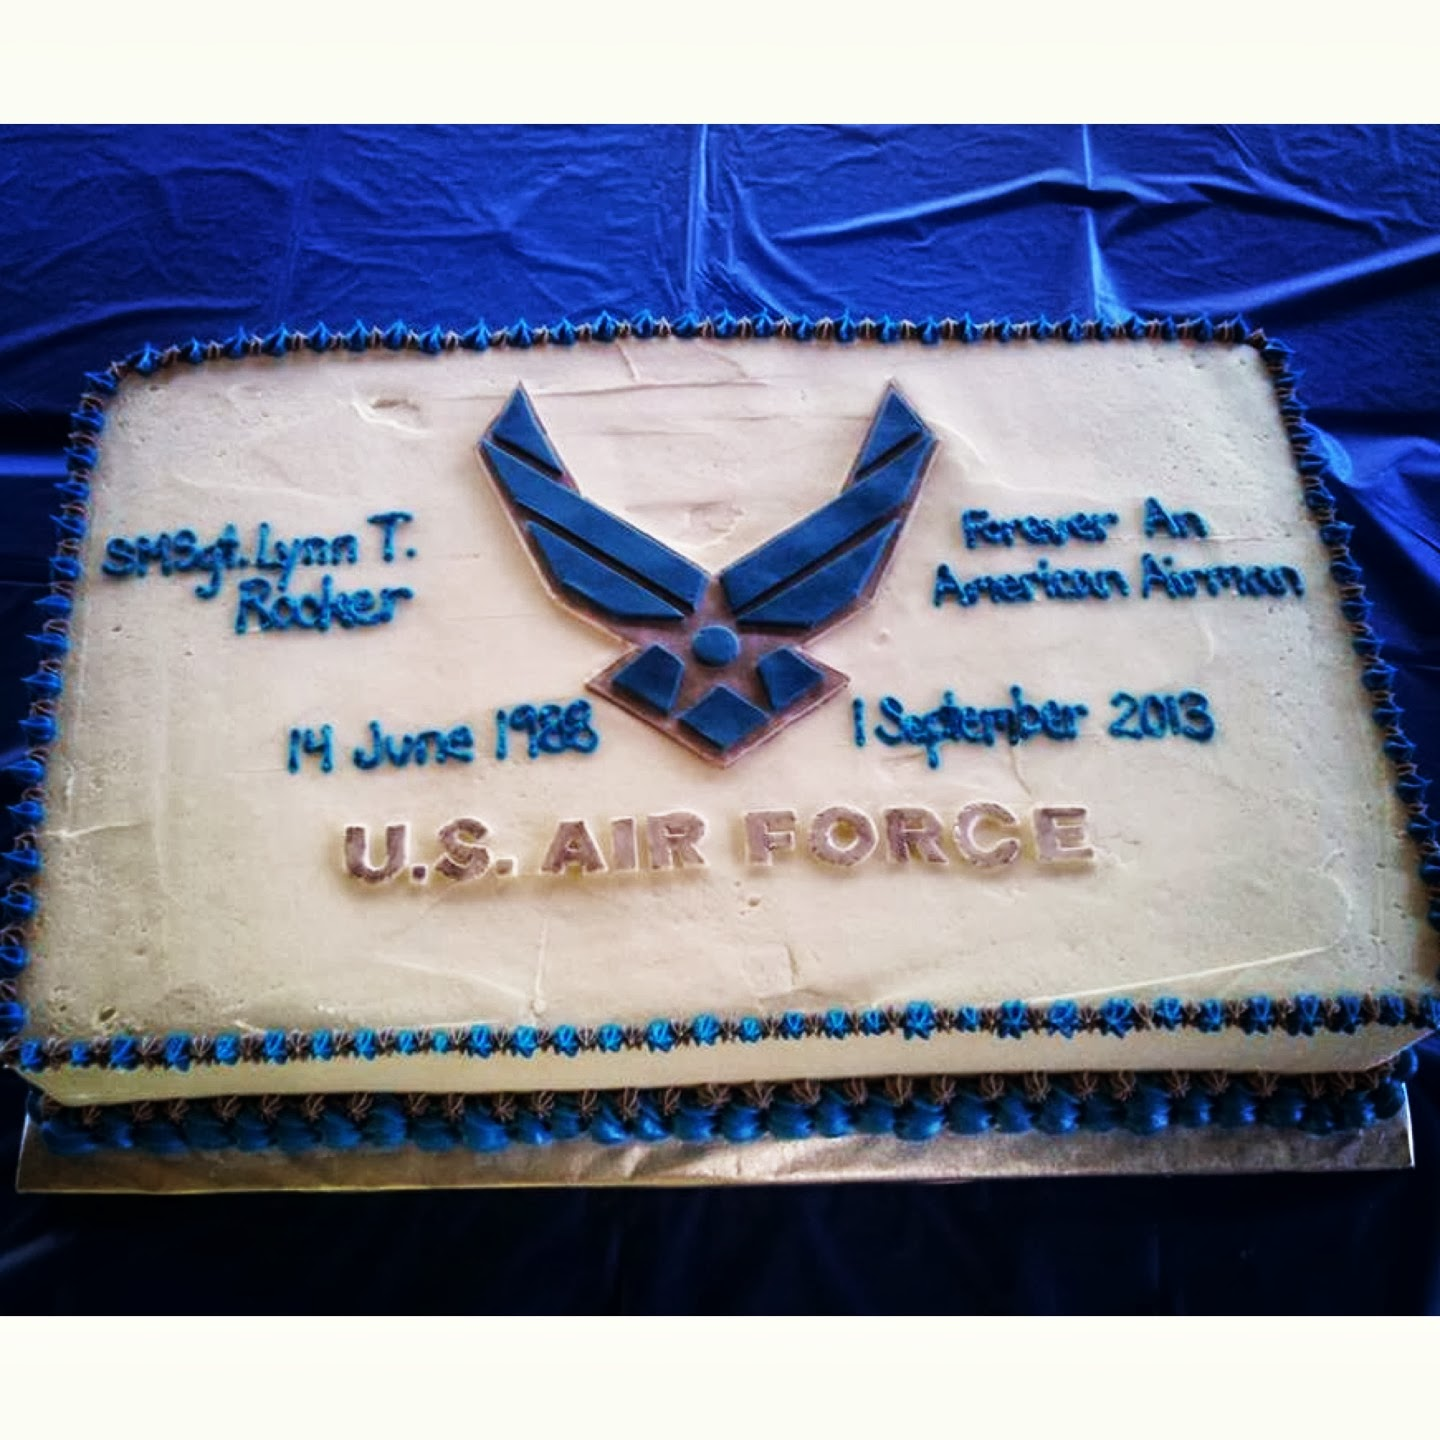 Simply Delicious Cakes Air Force Retirement